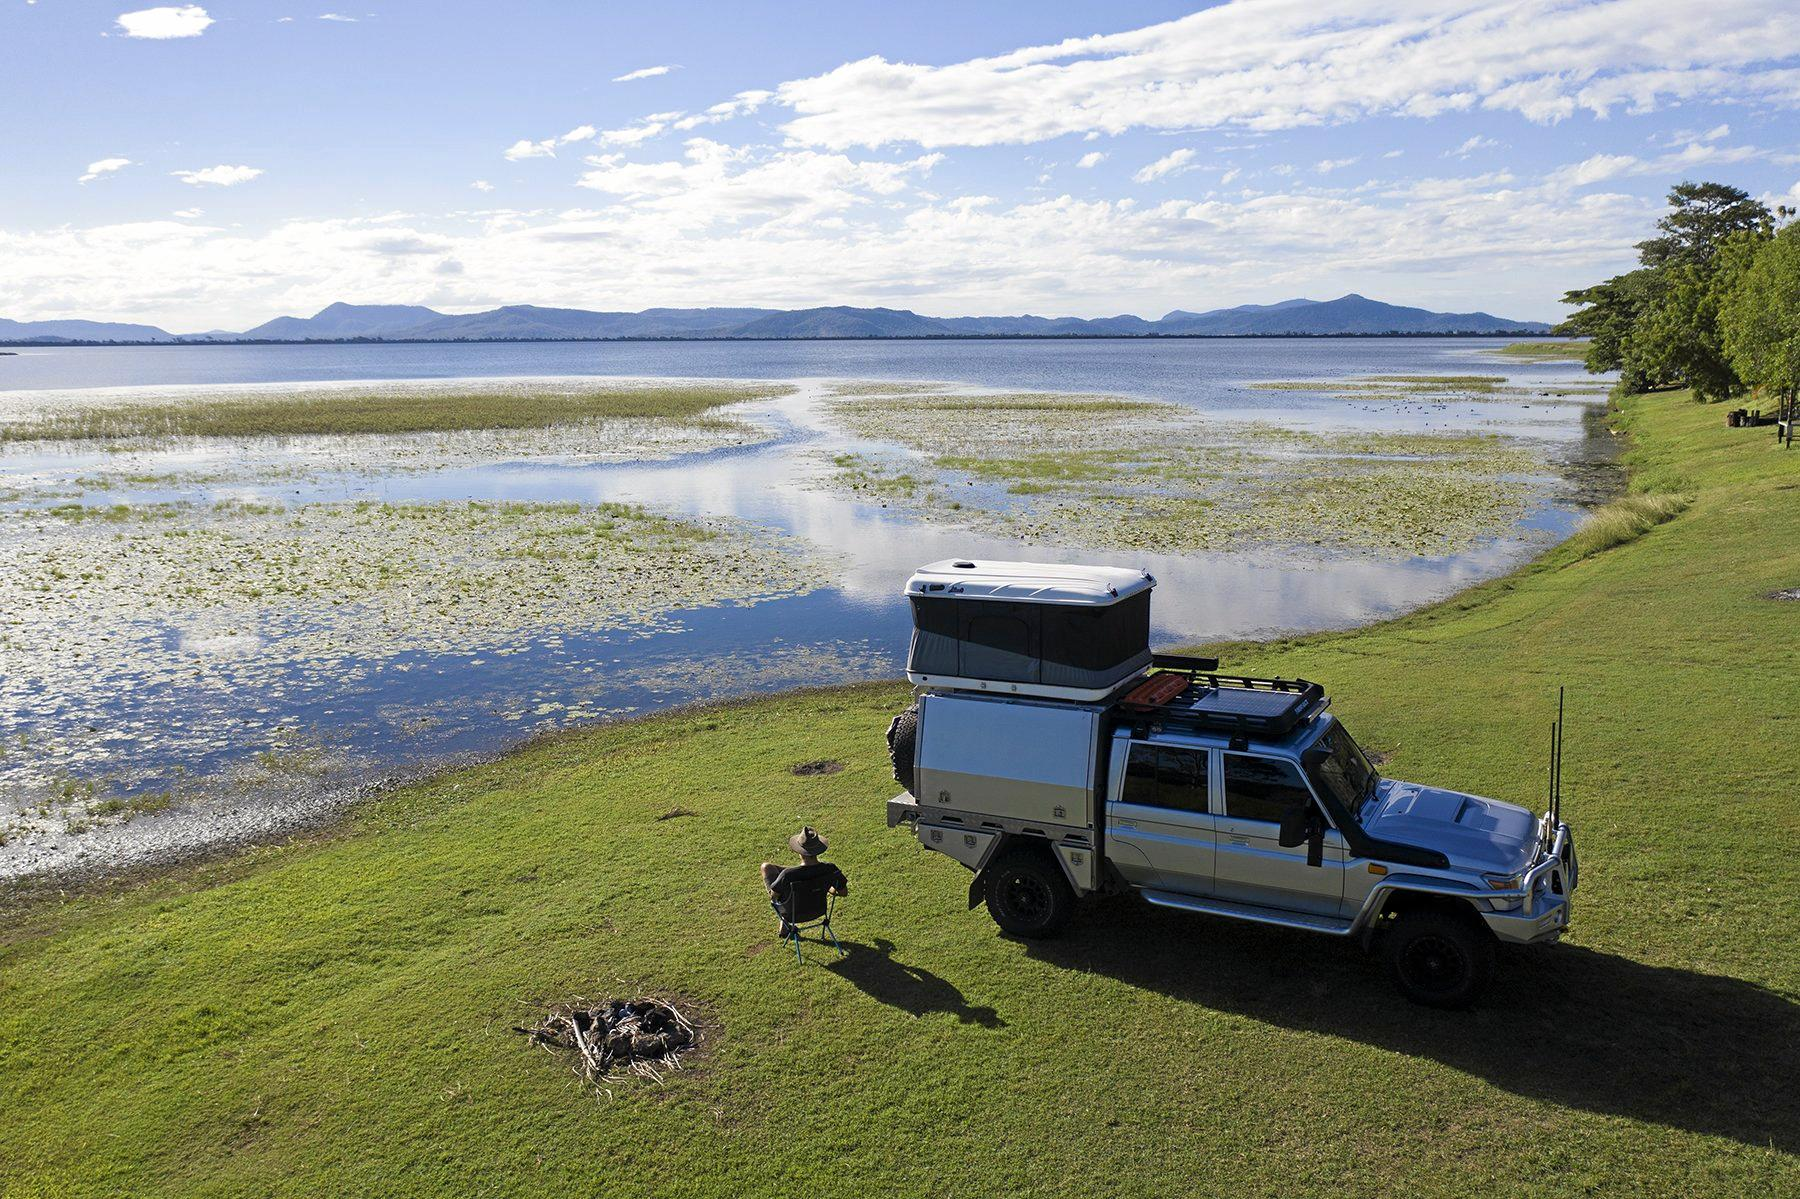 Images from photographer Sean Scott's time in the Mackay Region. Scott a Kinchent Dam.